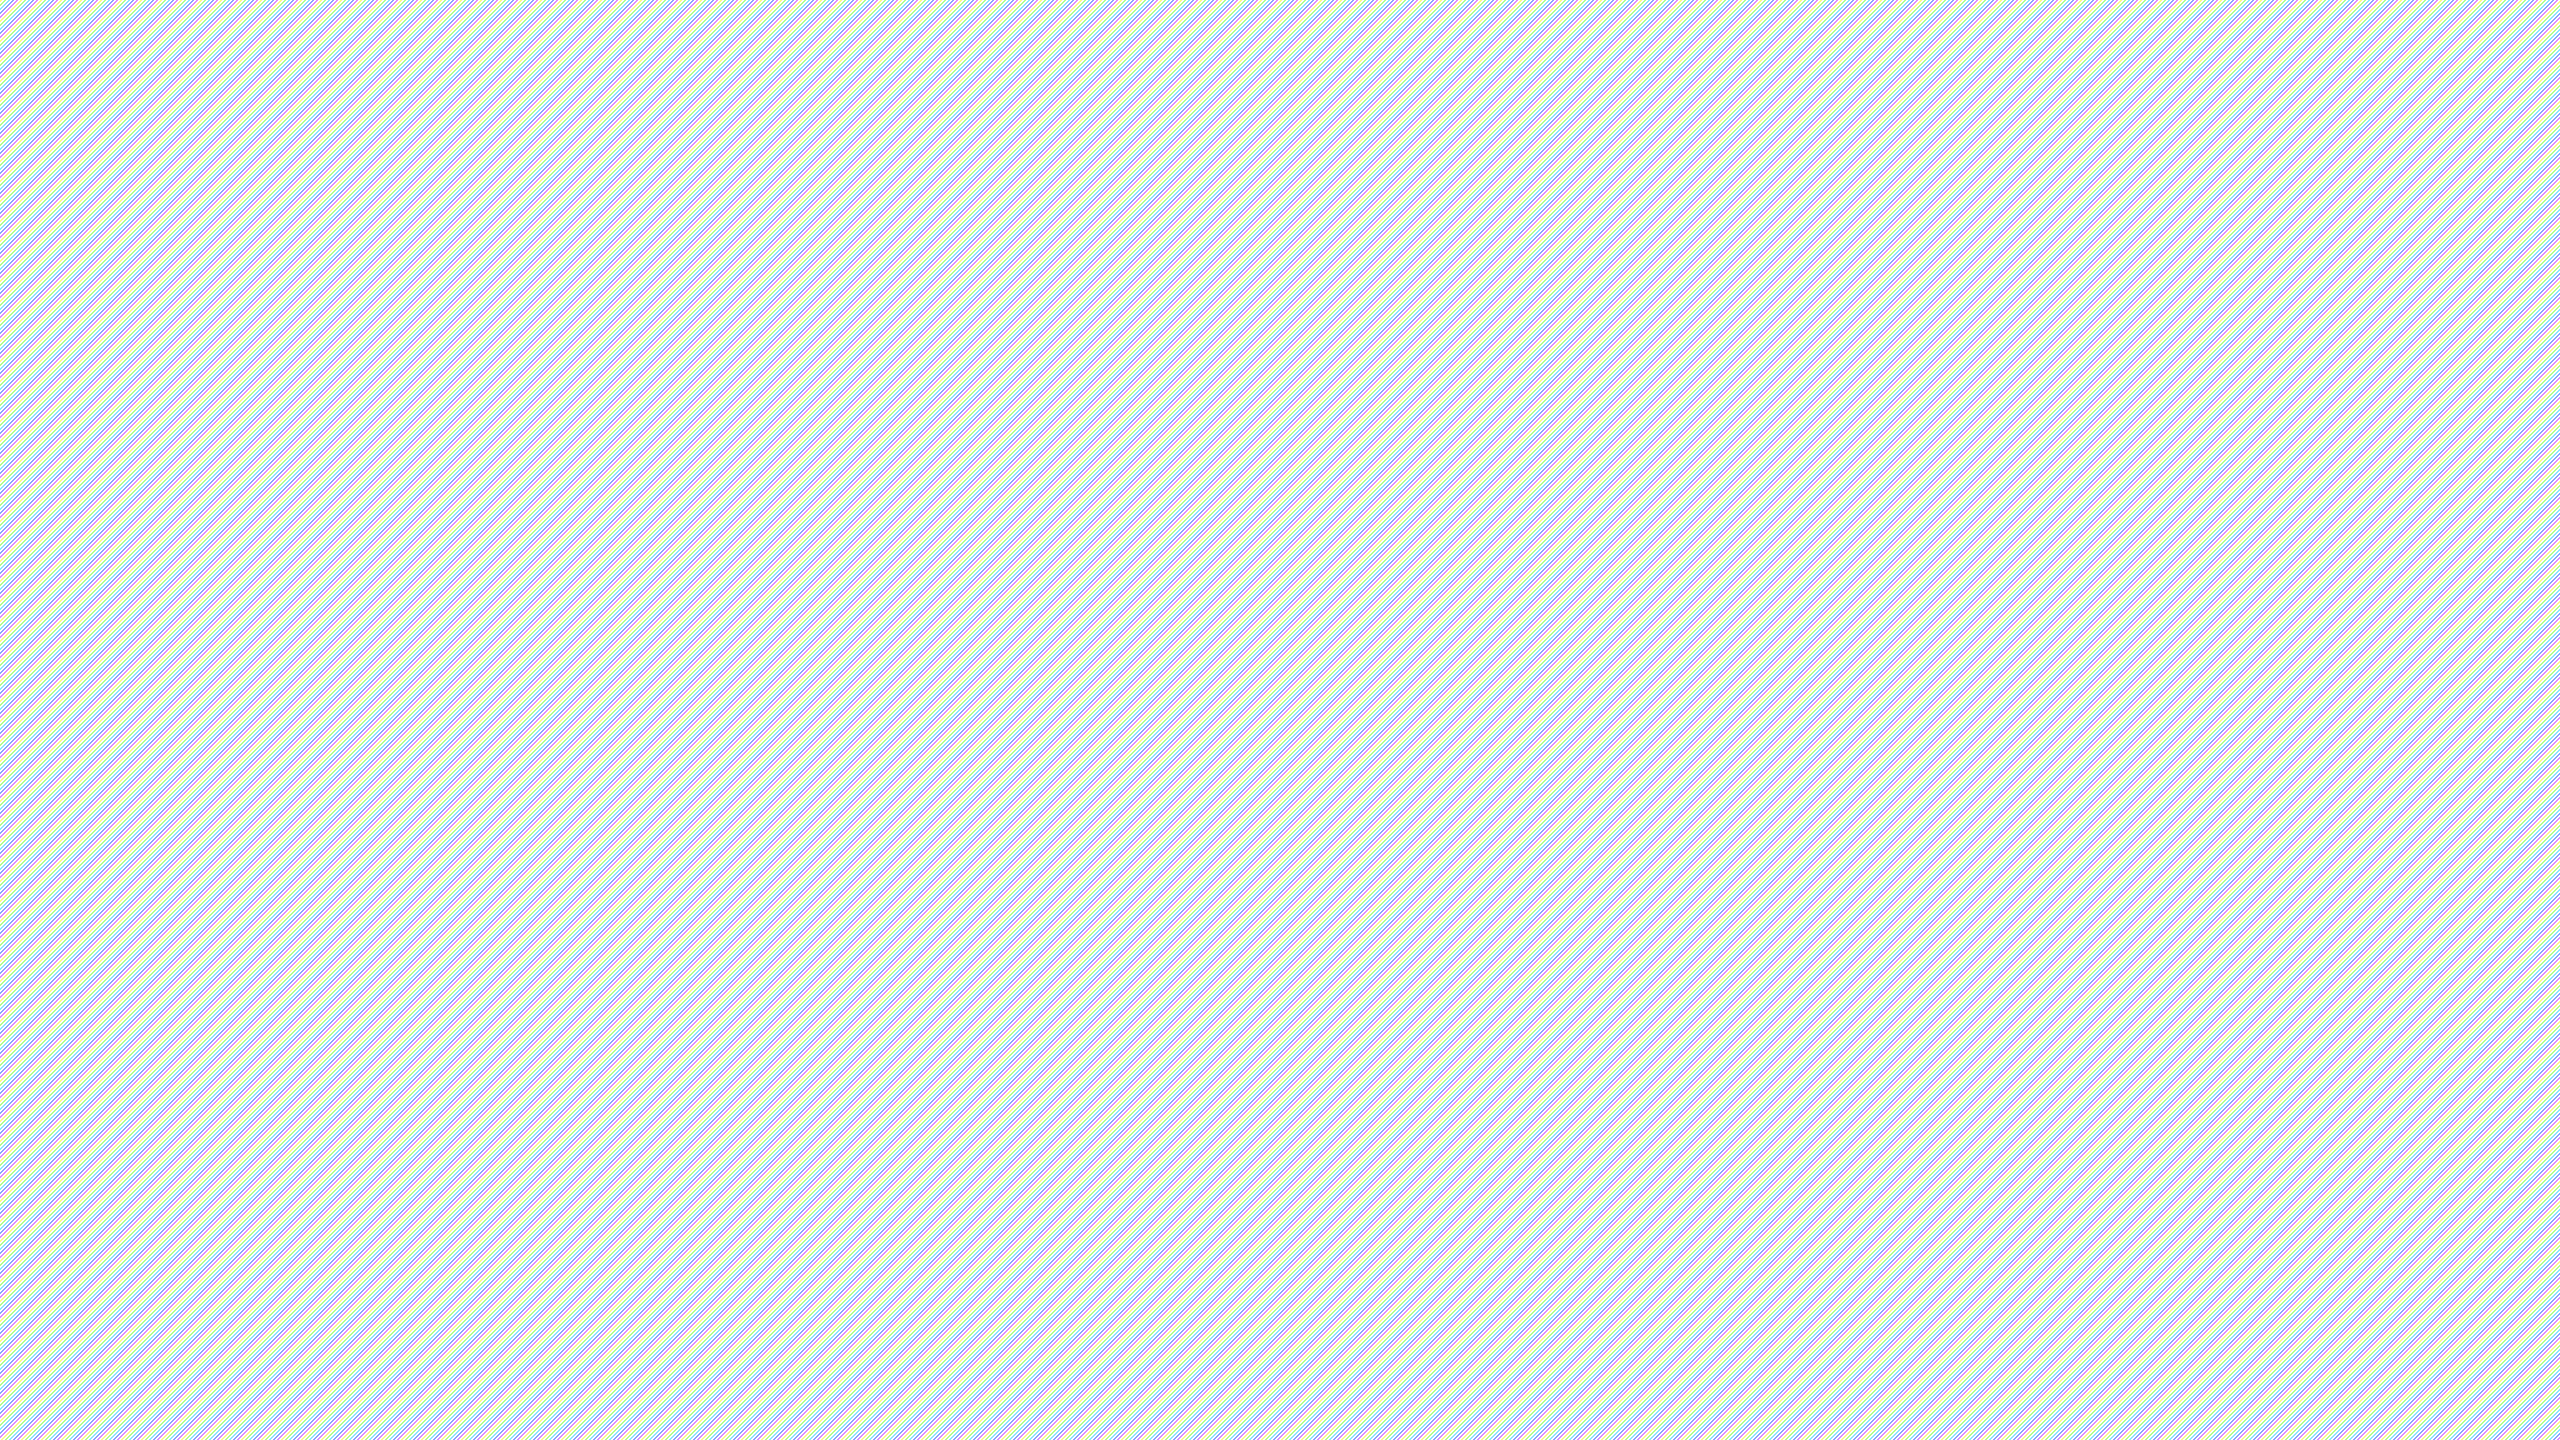 Tumblr Backgrounds Pastel 1920x1080 The Best And Most